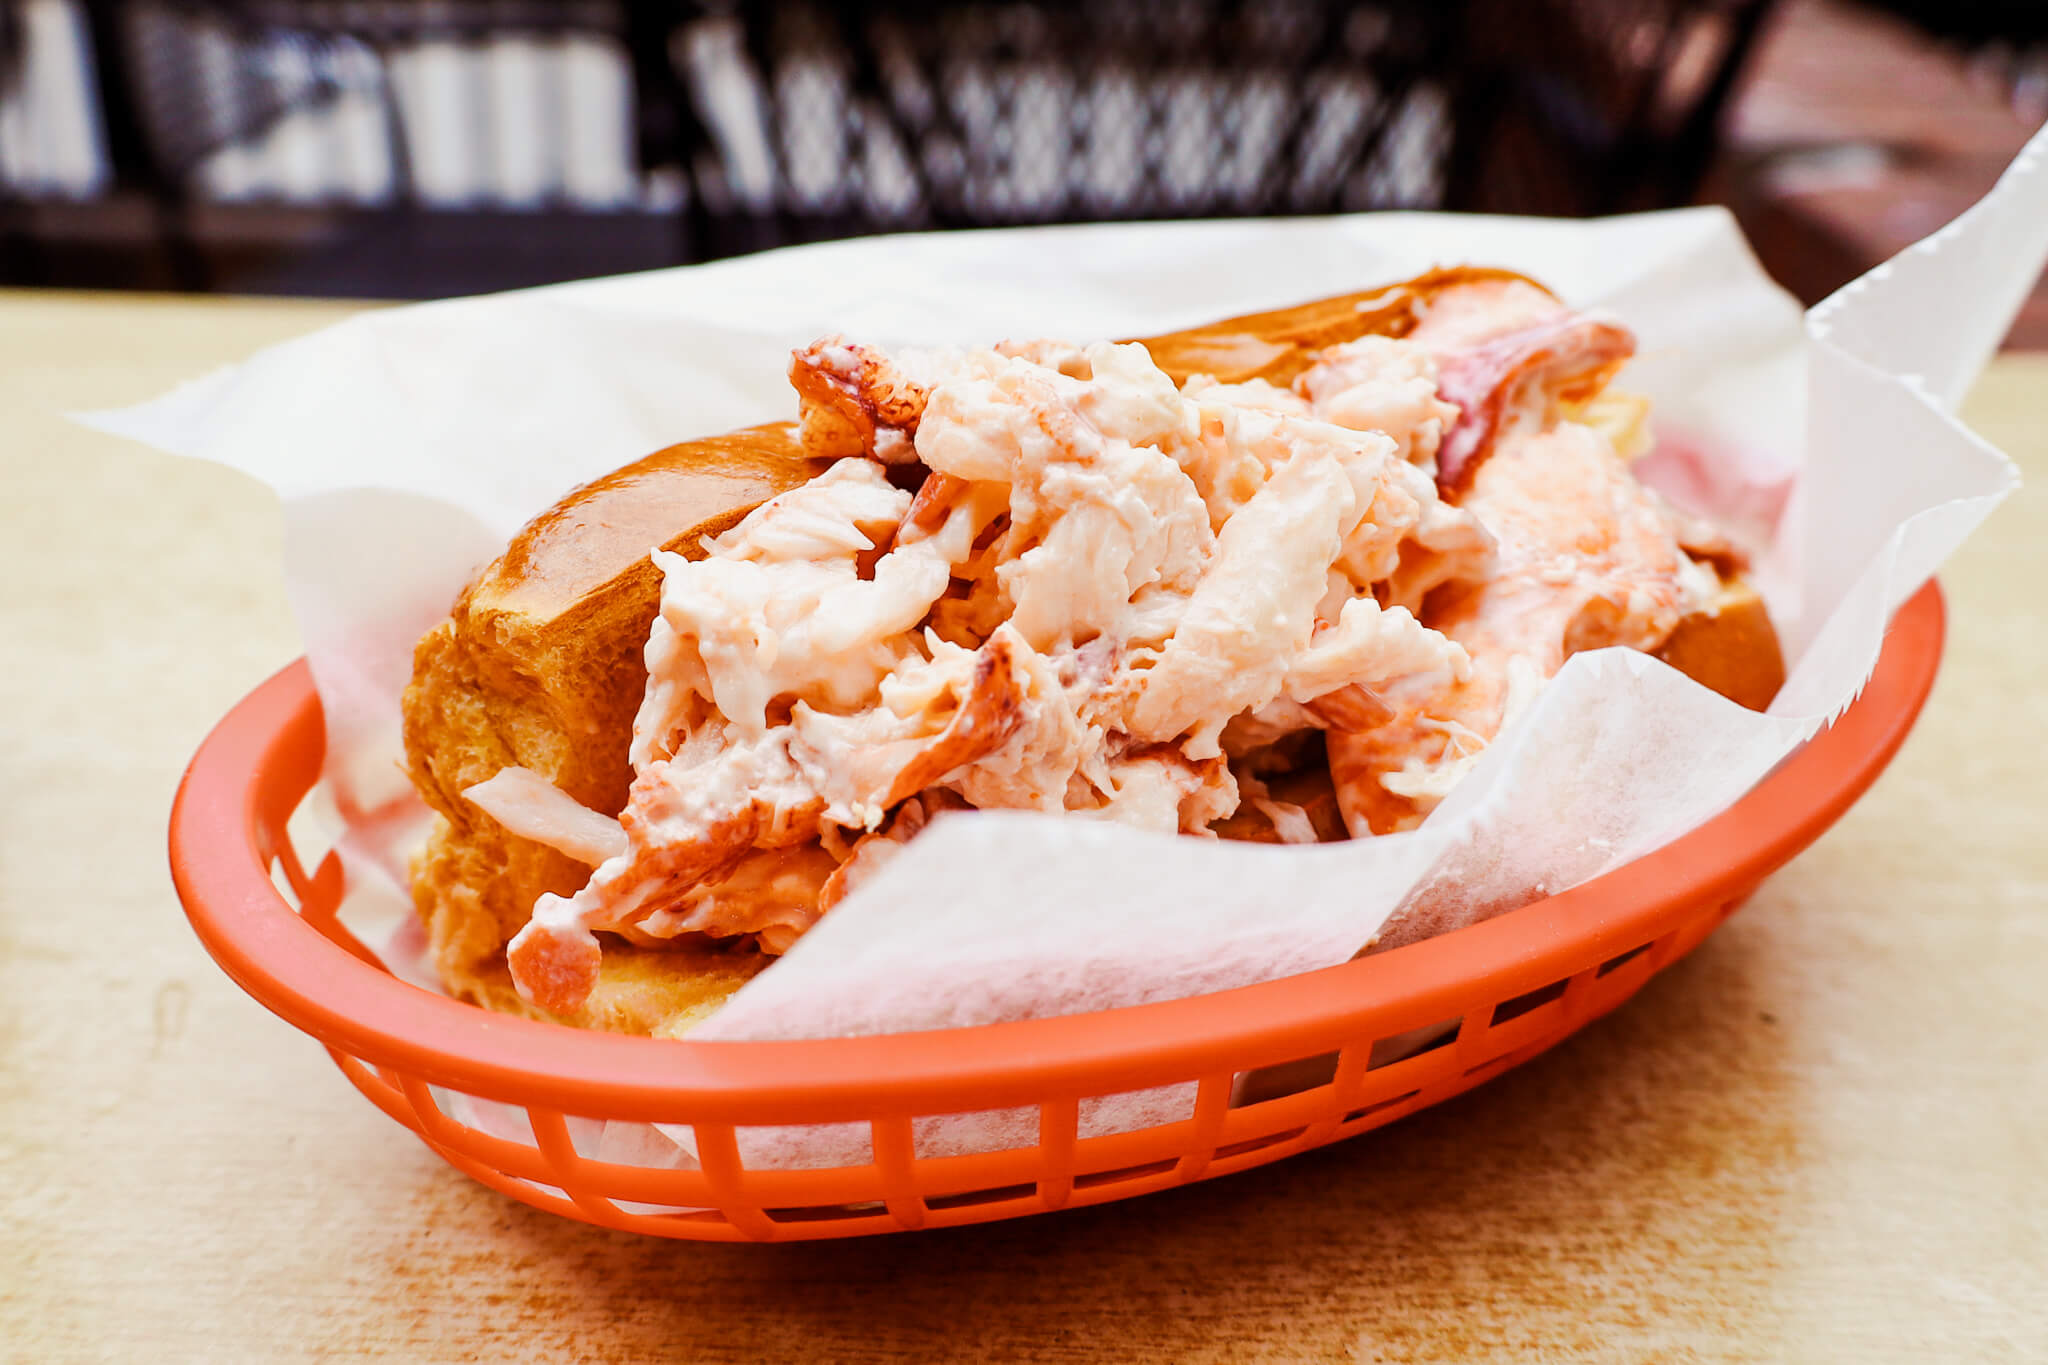 A lobster roll in a red basket.